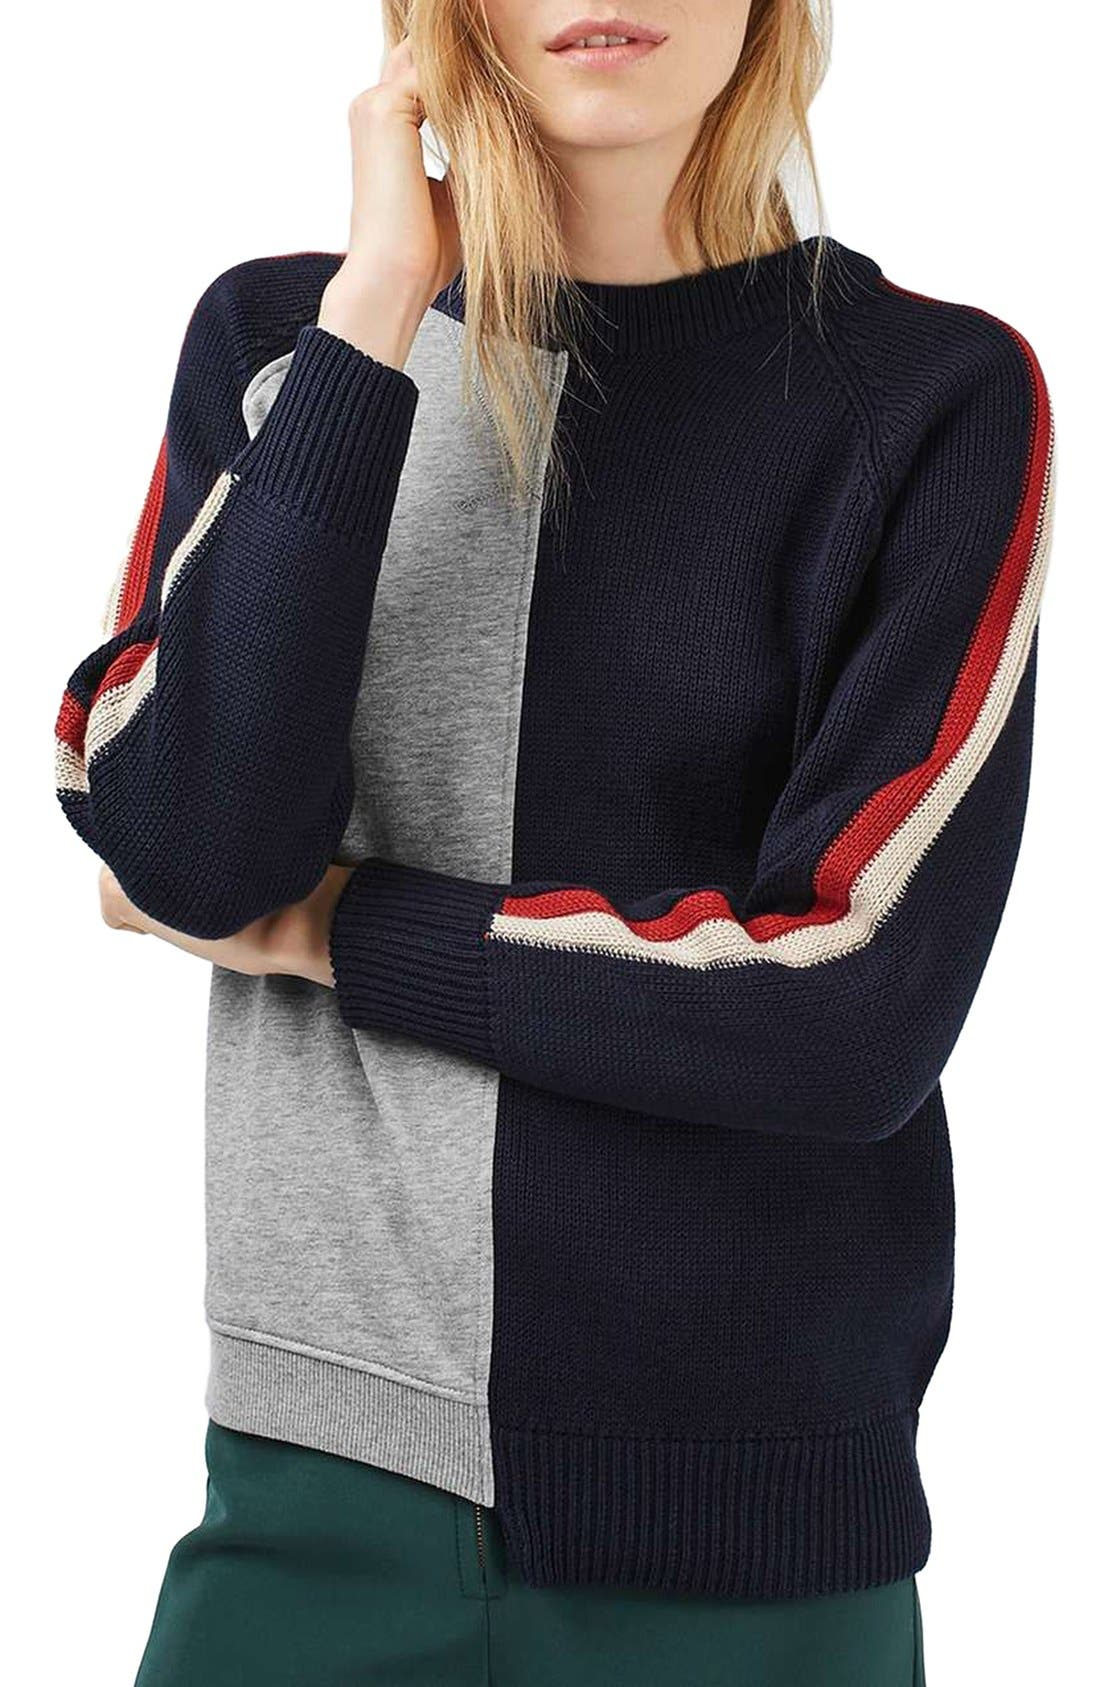 Alternate Image 1 Selected - Topshop Cutabout Colorblock Sweater